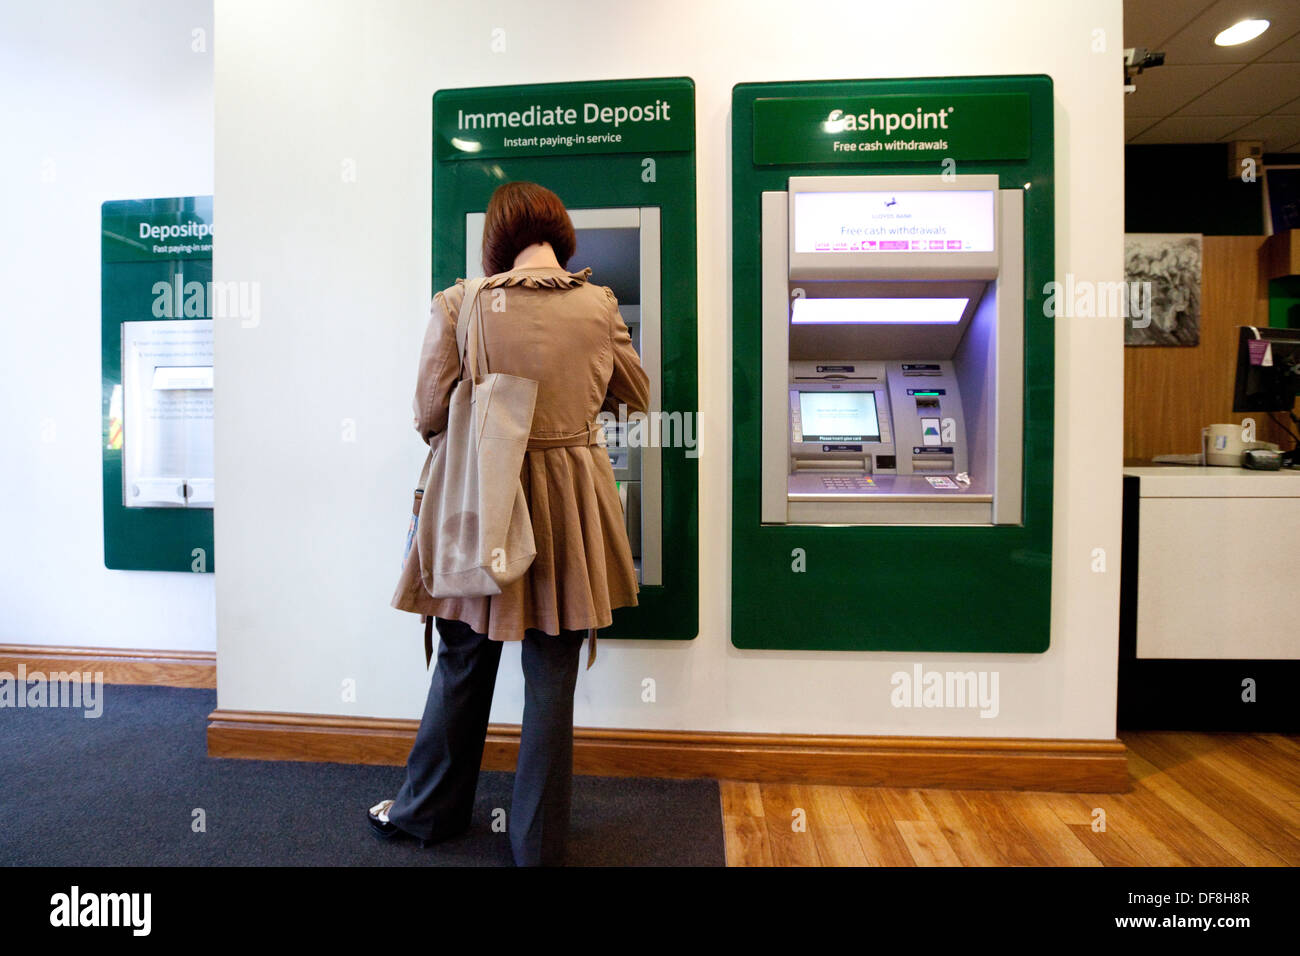 A customer using the new Immediate Deposit facilty, interior of Lloyds Bank, Concept of Modern Technology in Banks, UK - Stock Image